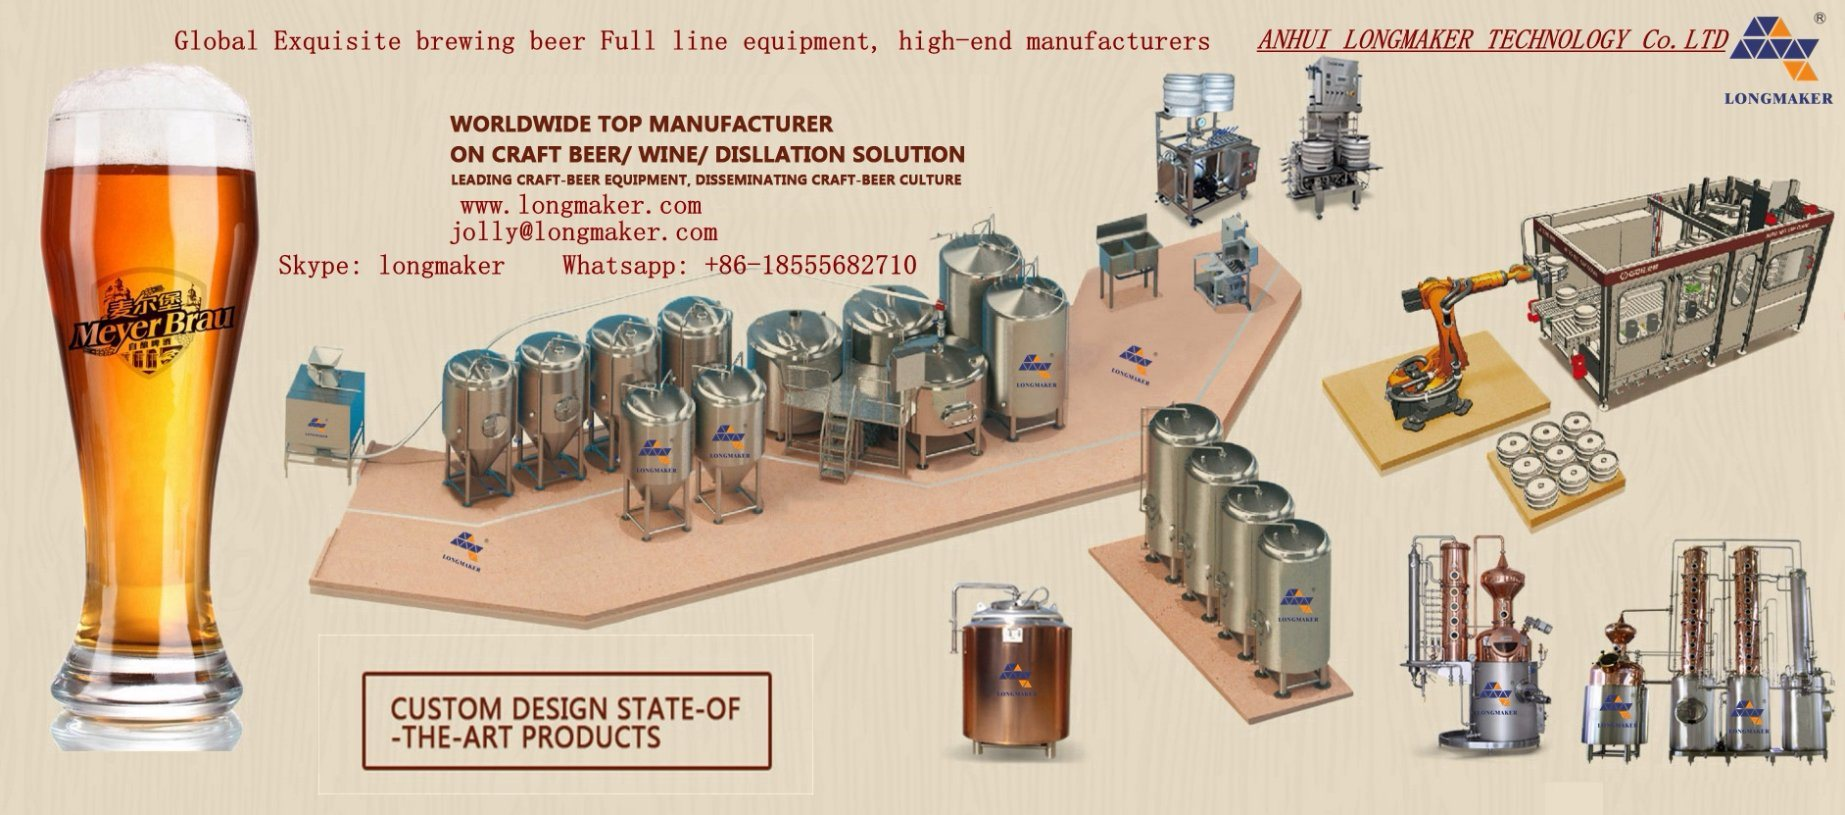 Handicraft; beer brewing equipment; fermenter